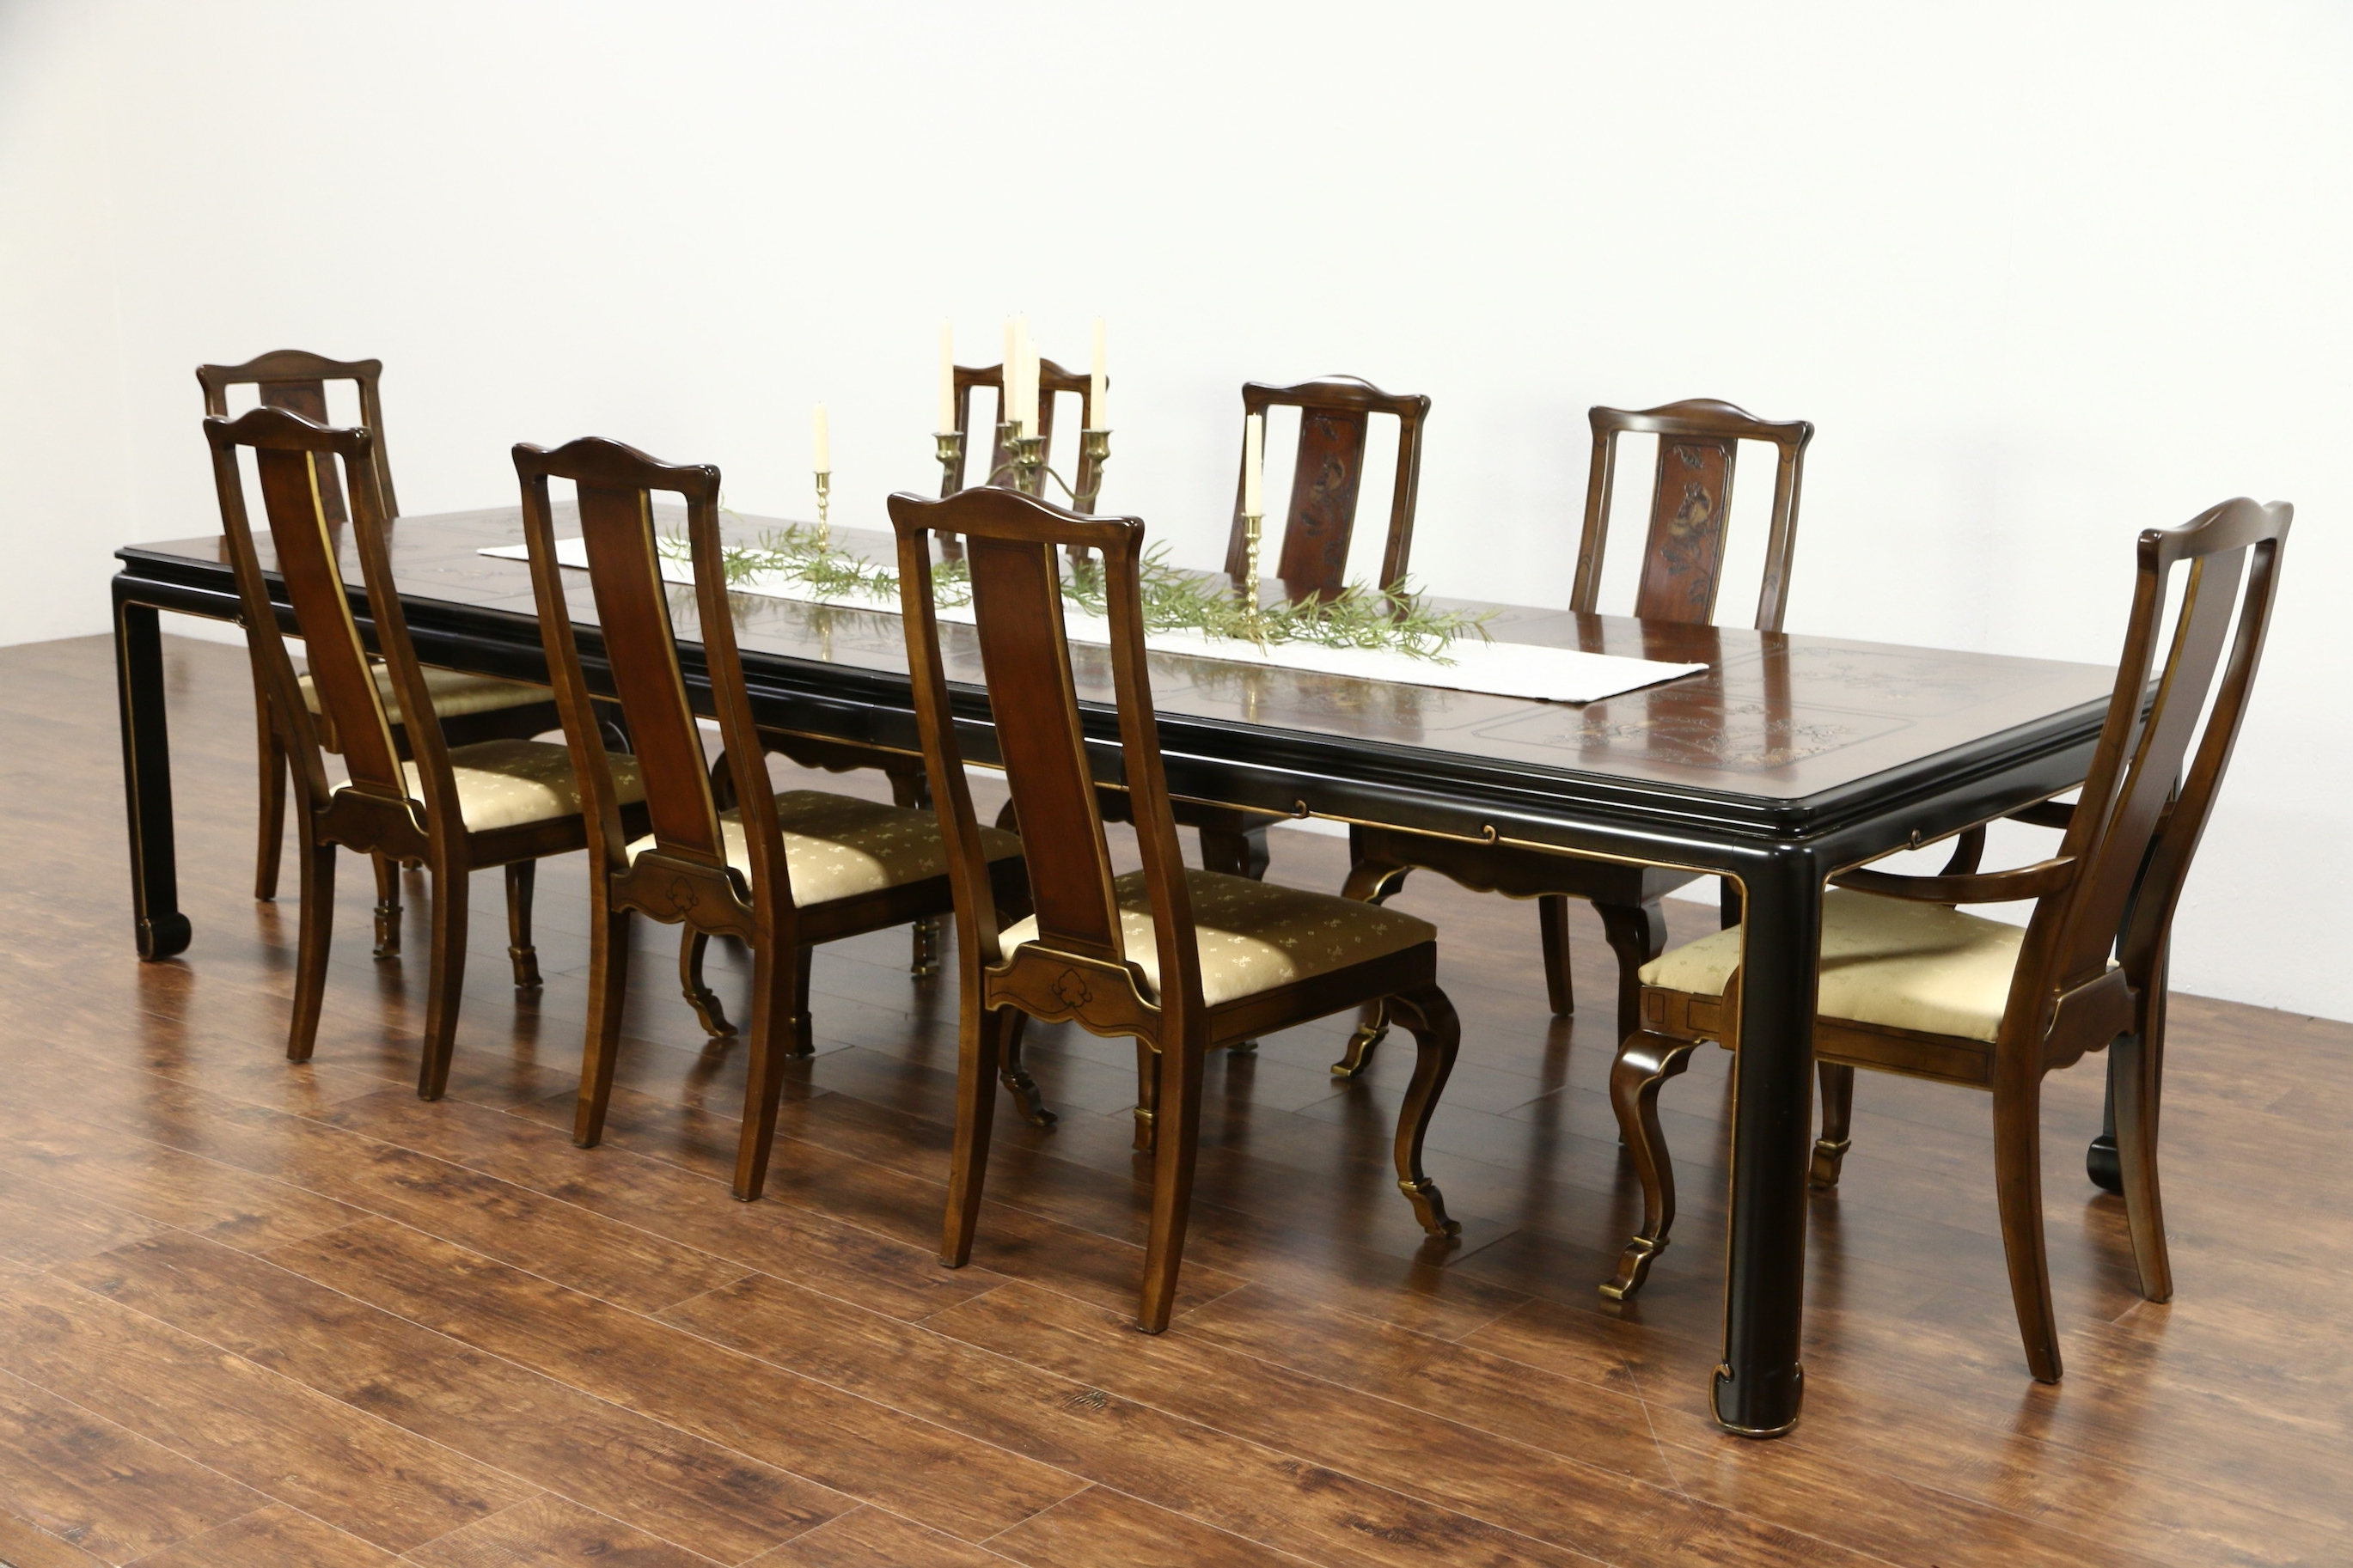 Dining Tables With 8 Chairs Throughout Well Known Sold – Drexel Heritage Connoisseur Chinese Motif Vintage Dining Set (Gallery 5 of 25)